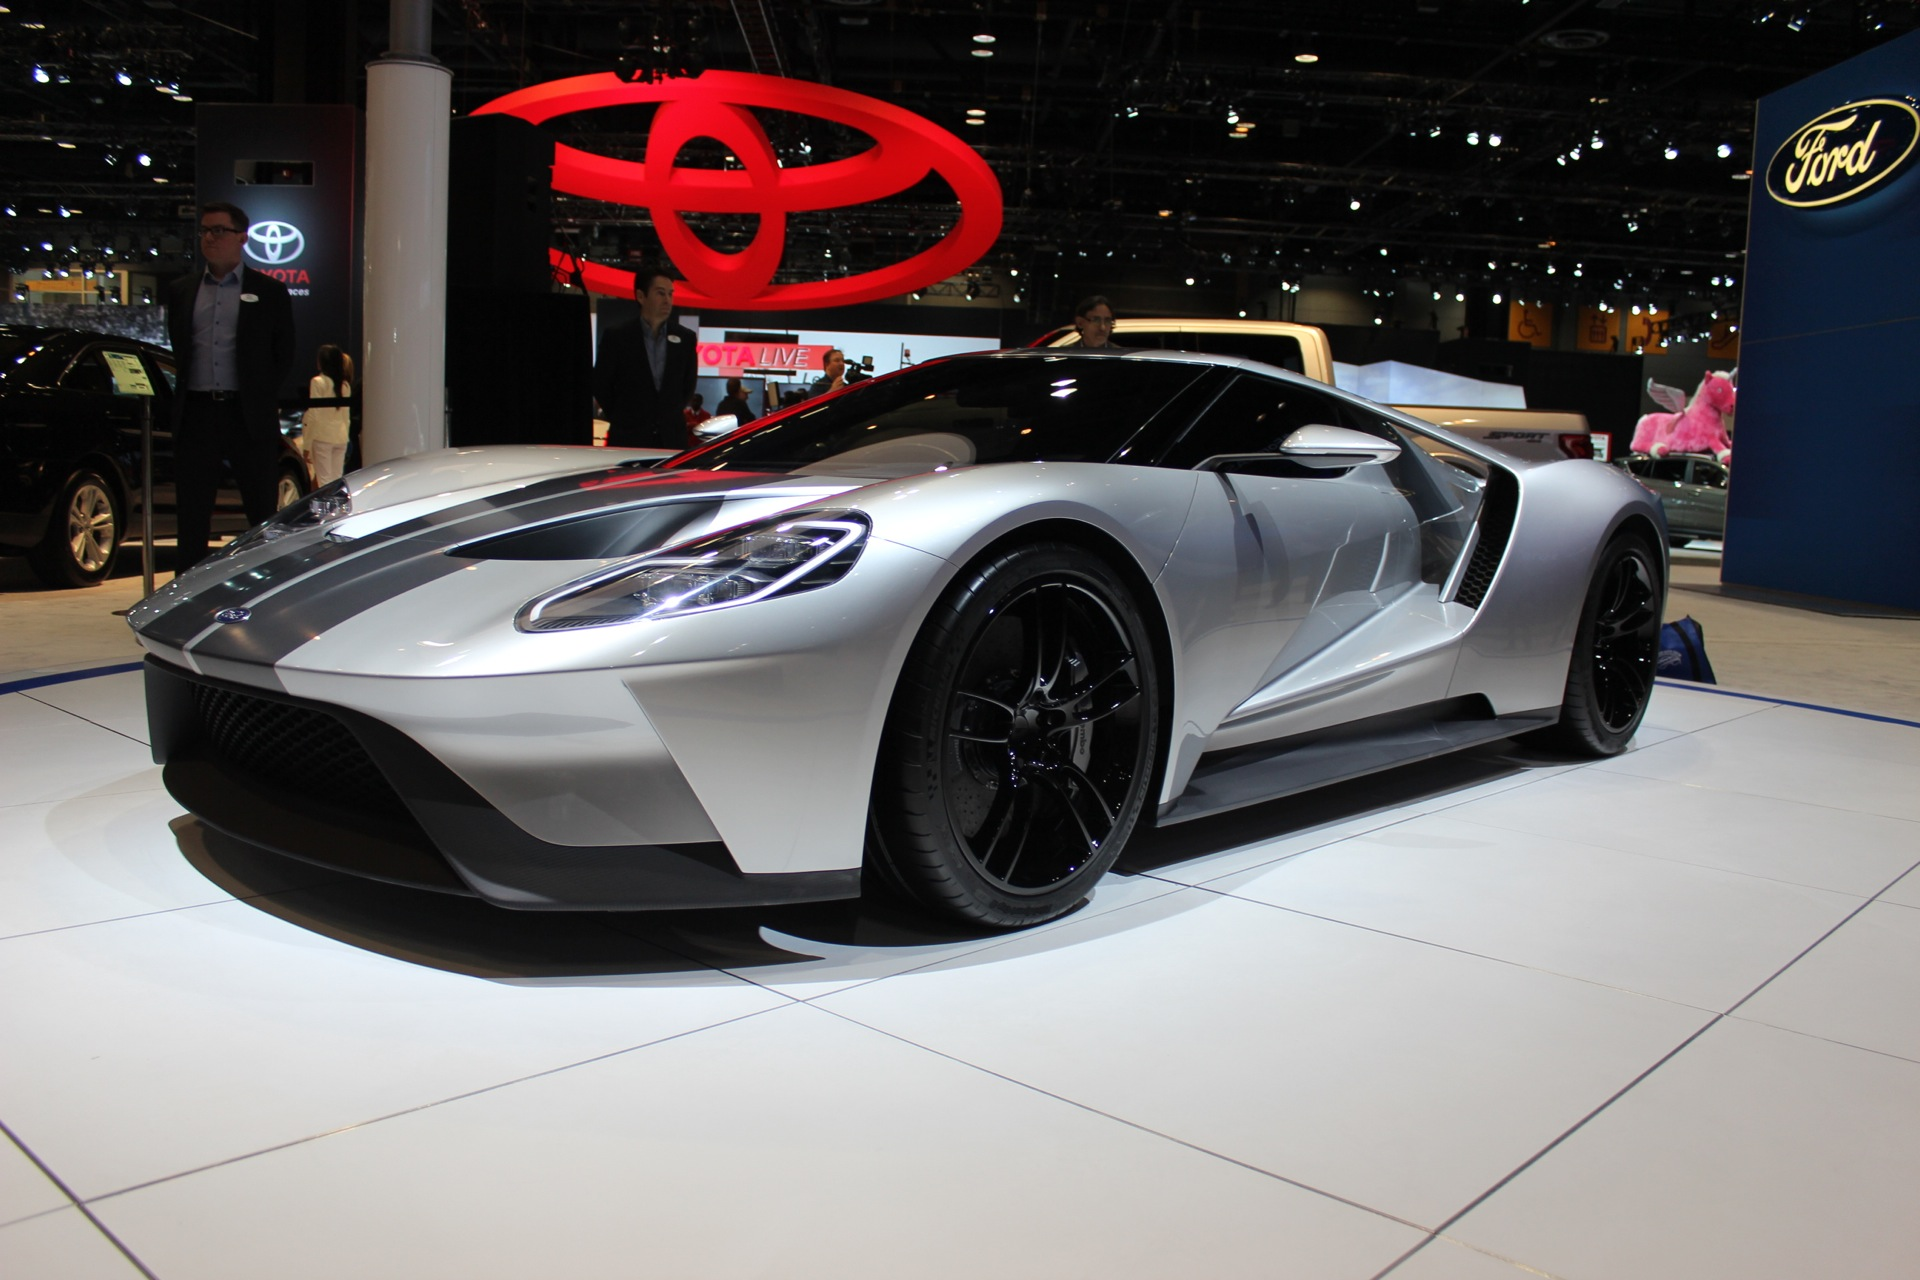 2017 Ford GT Shows Off Its Curves In Silver At The 2015